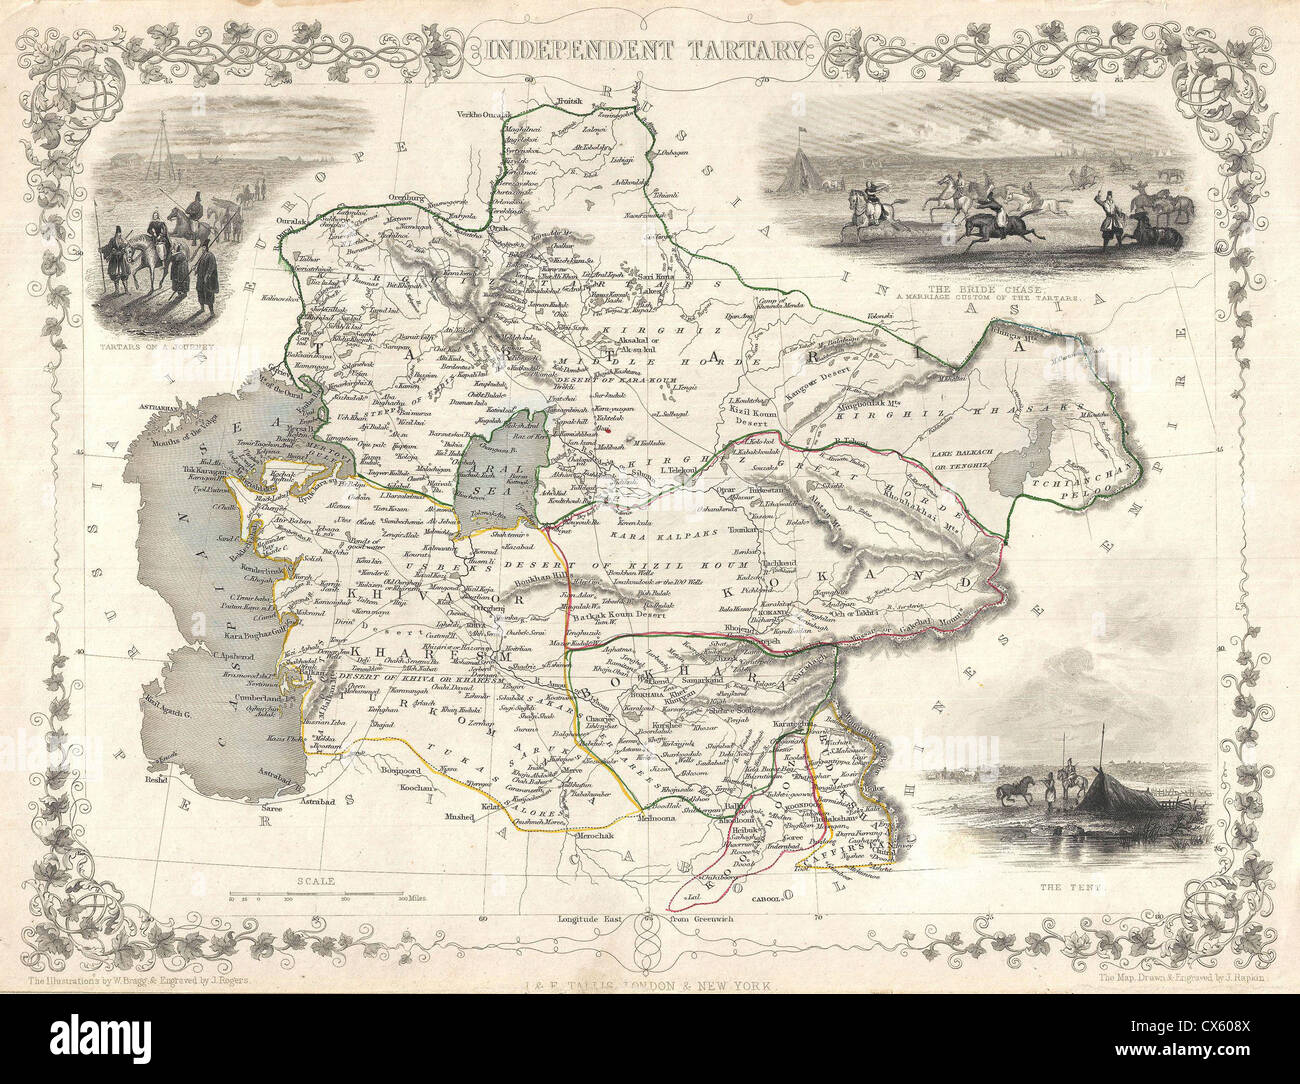 1851 Tallis and Rapkin Map of Independent Tartary (Central Asia) - - Stock Image